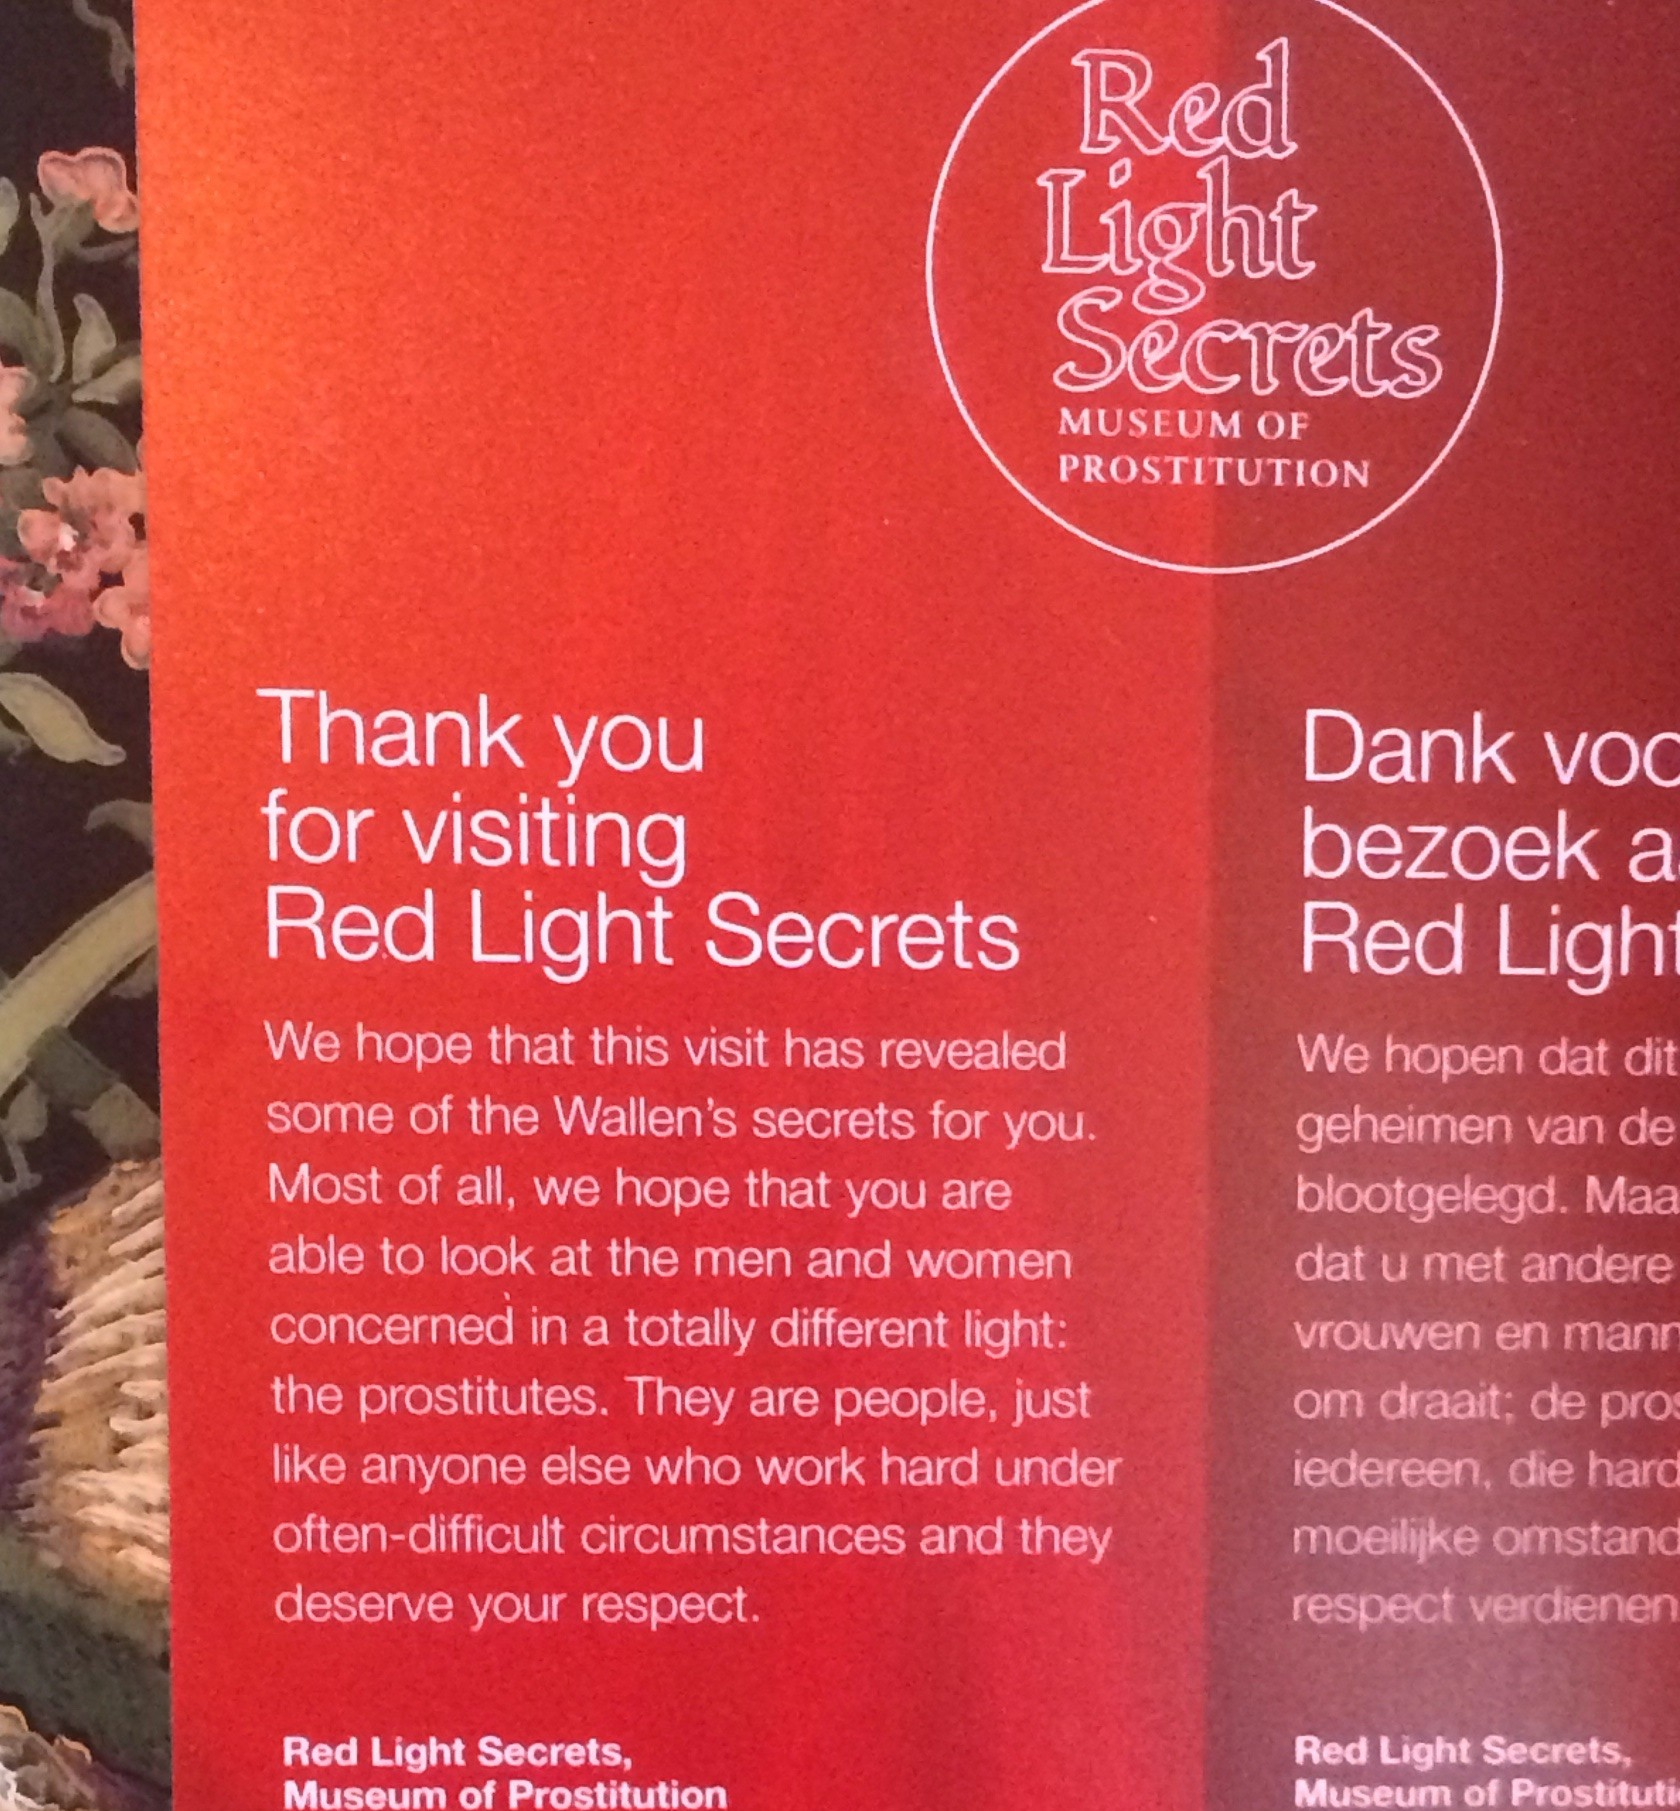 Red light secrets museum of prostitution in amsterdams red light district